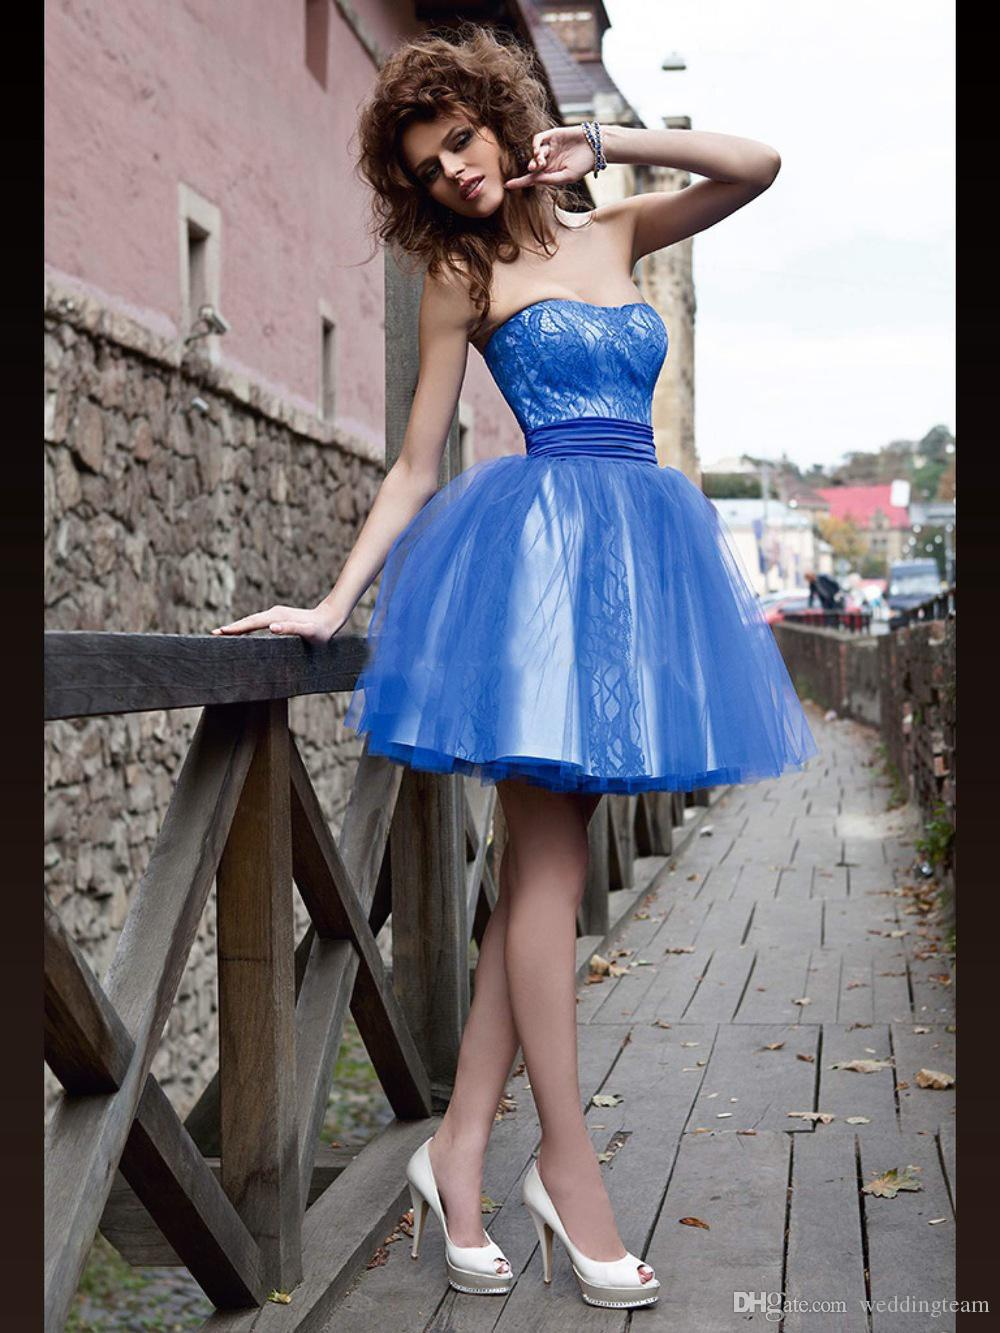 Sweet Blue Ball Gown Homecoming Abiti senza spalline in pizzo Tulle Mini breve Puffy Prom Dress Custom Made Party Gown adolescenti